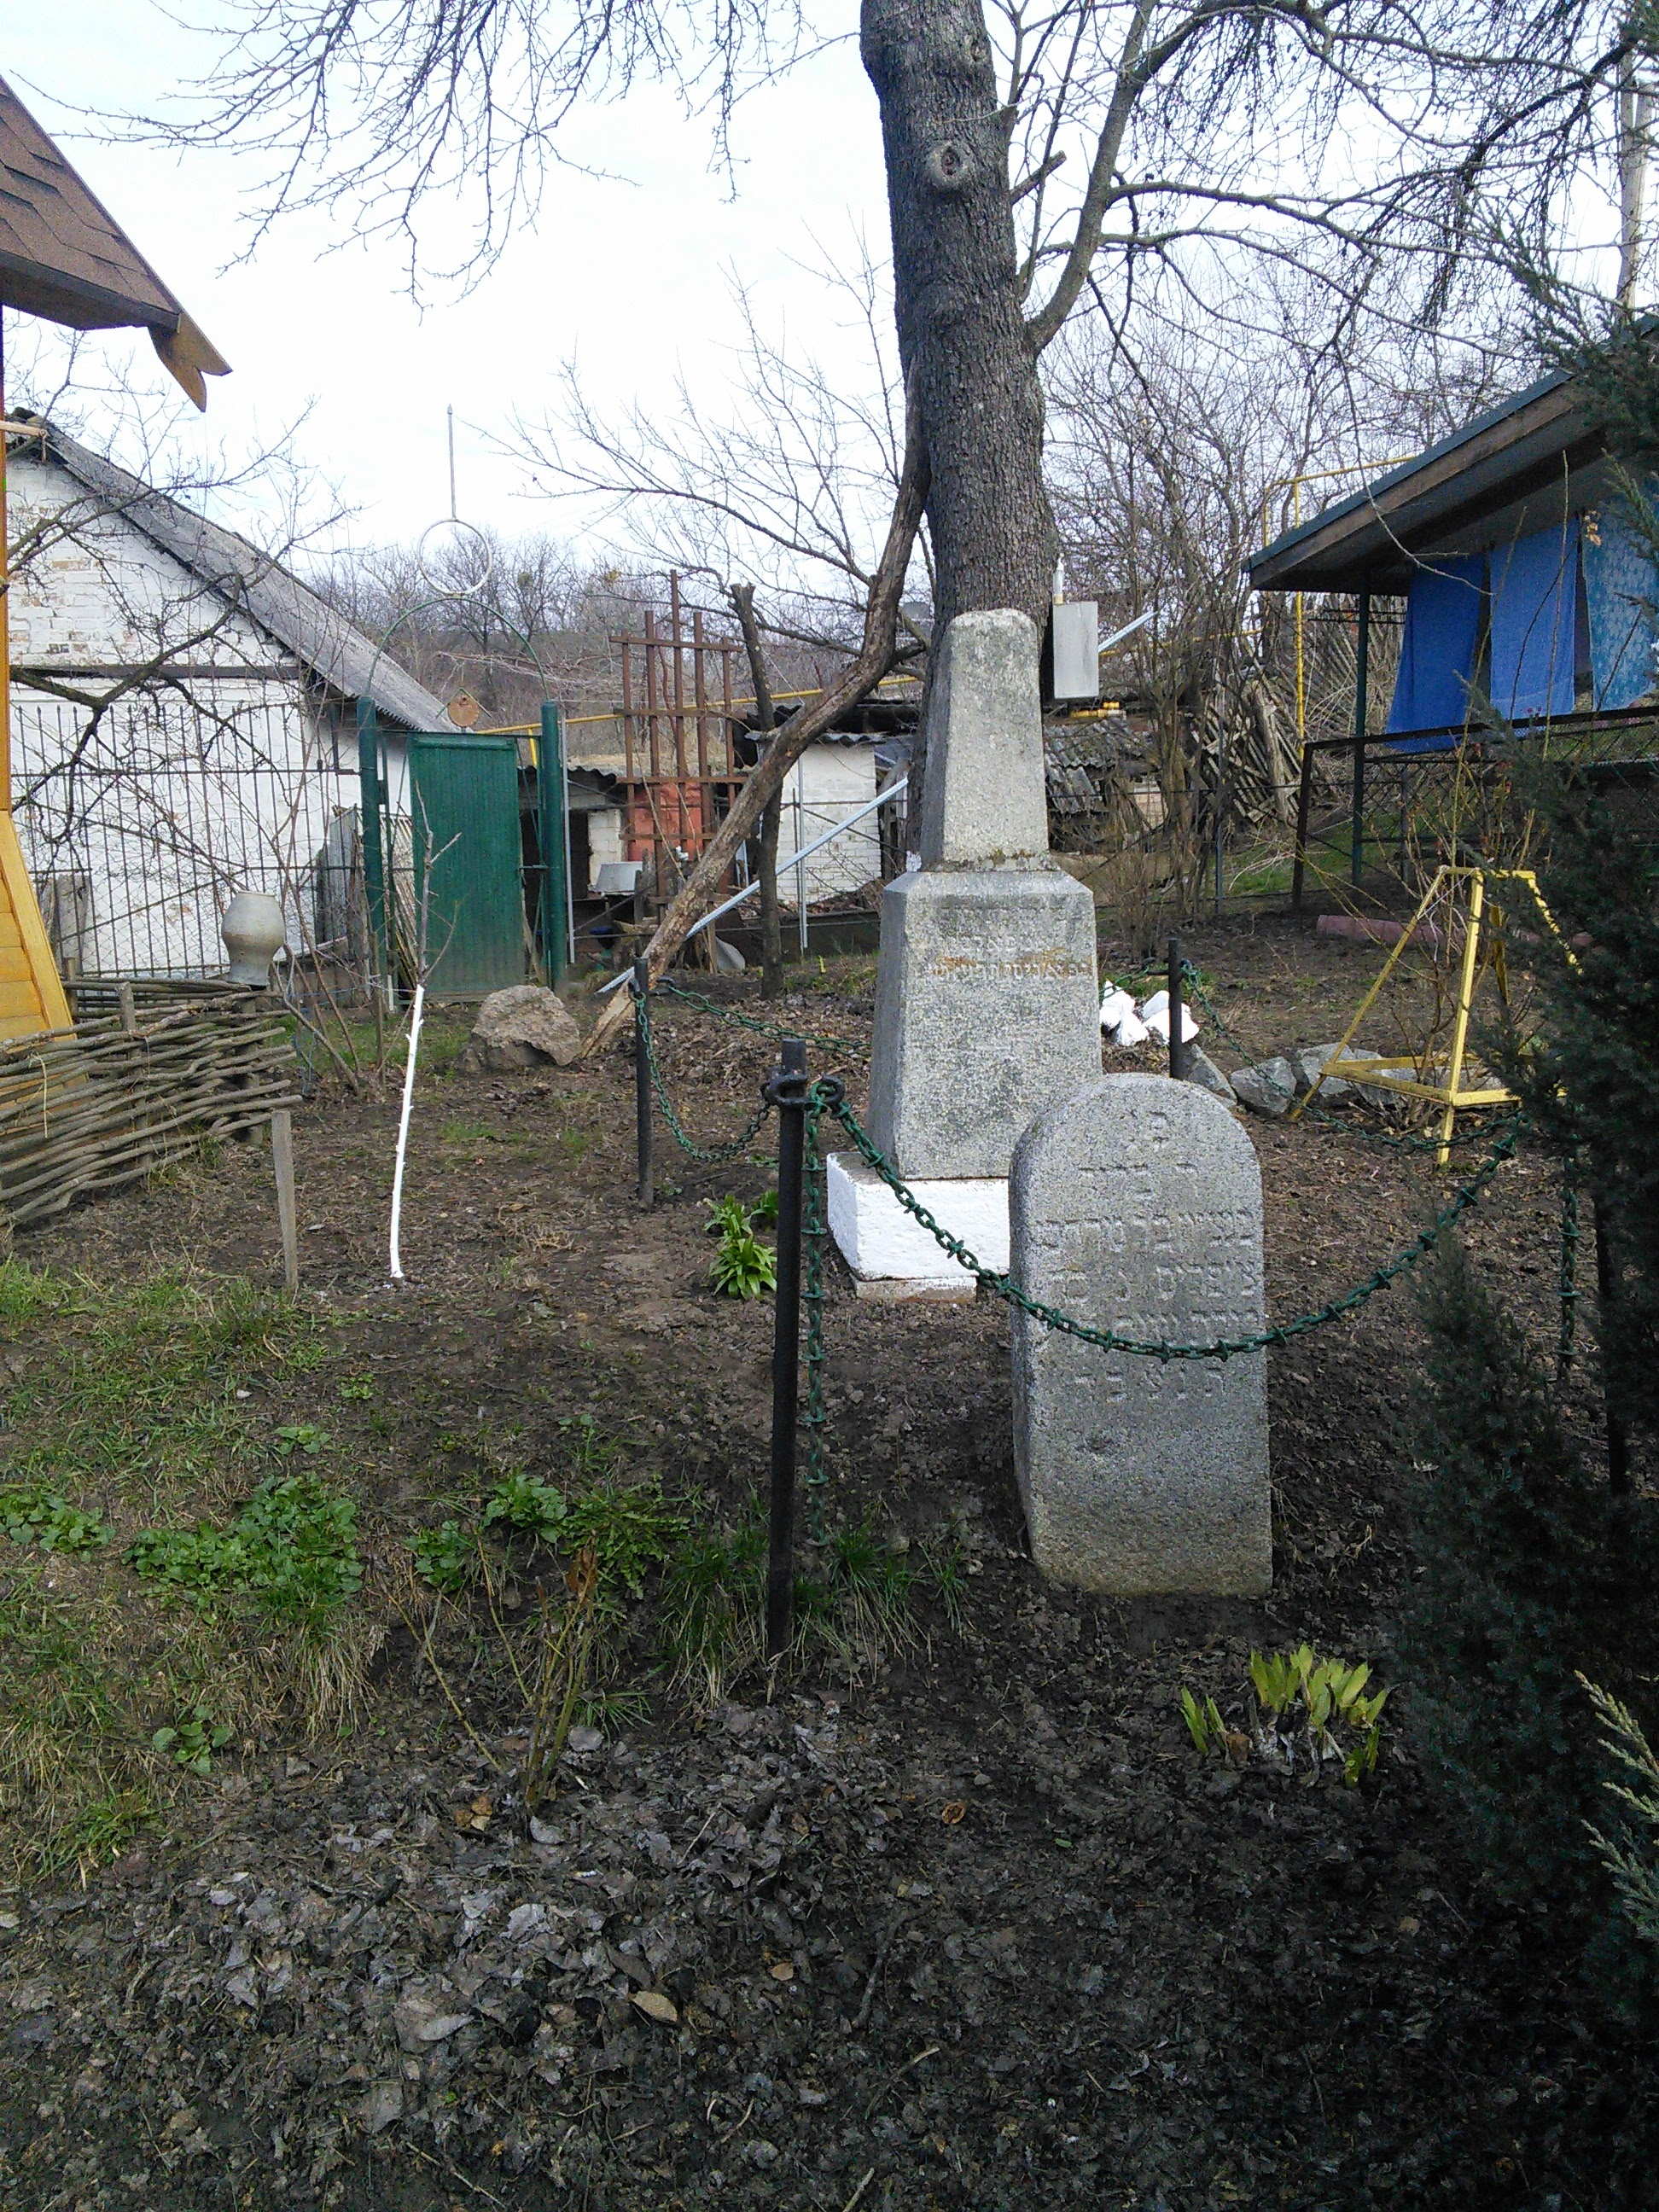 Two last gravestones of old Jewish cemetery